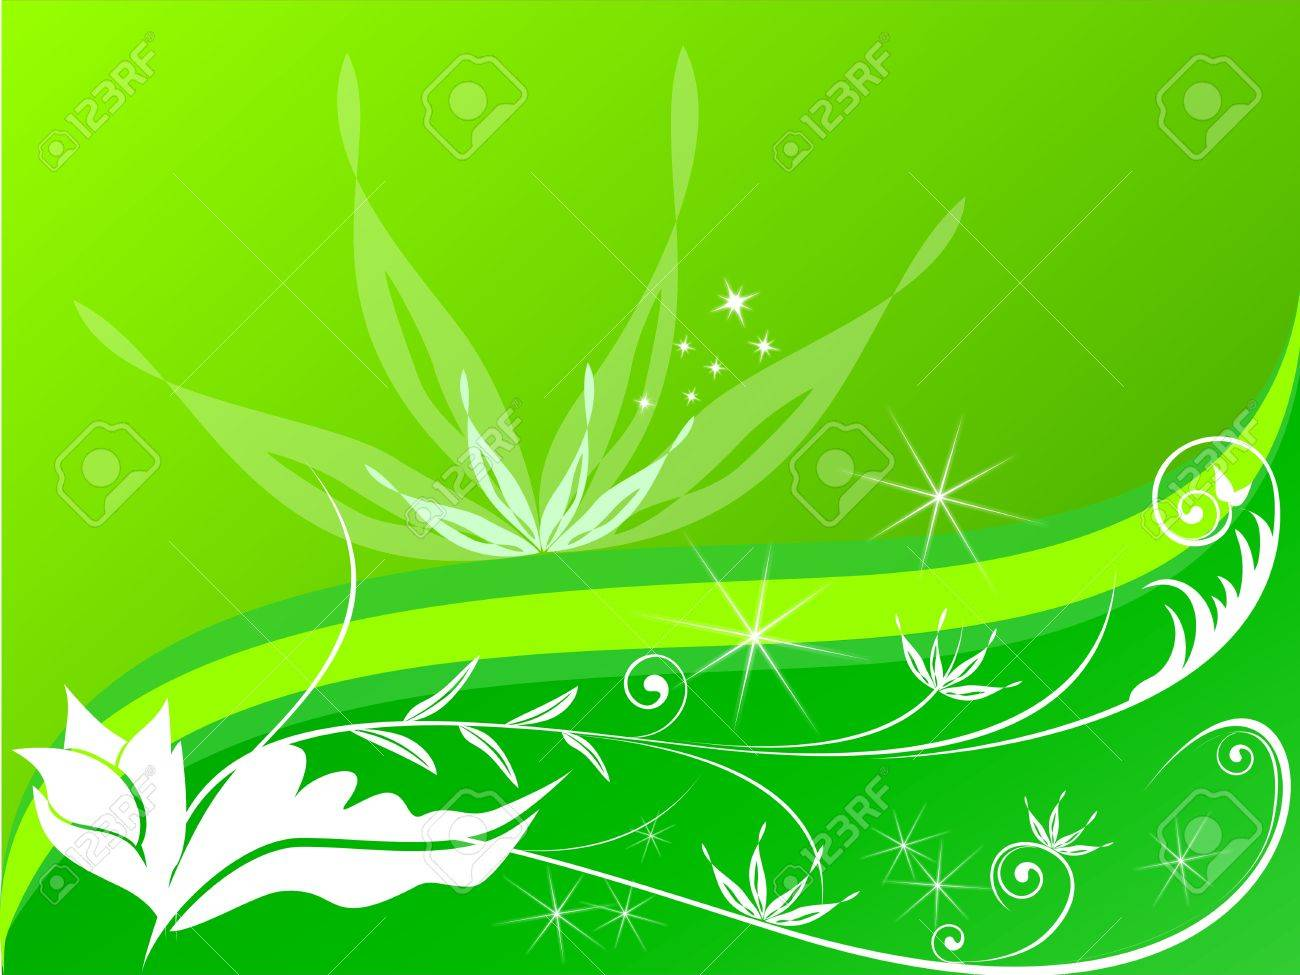 Green floral background - 10748467